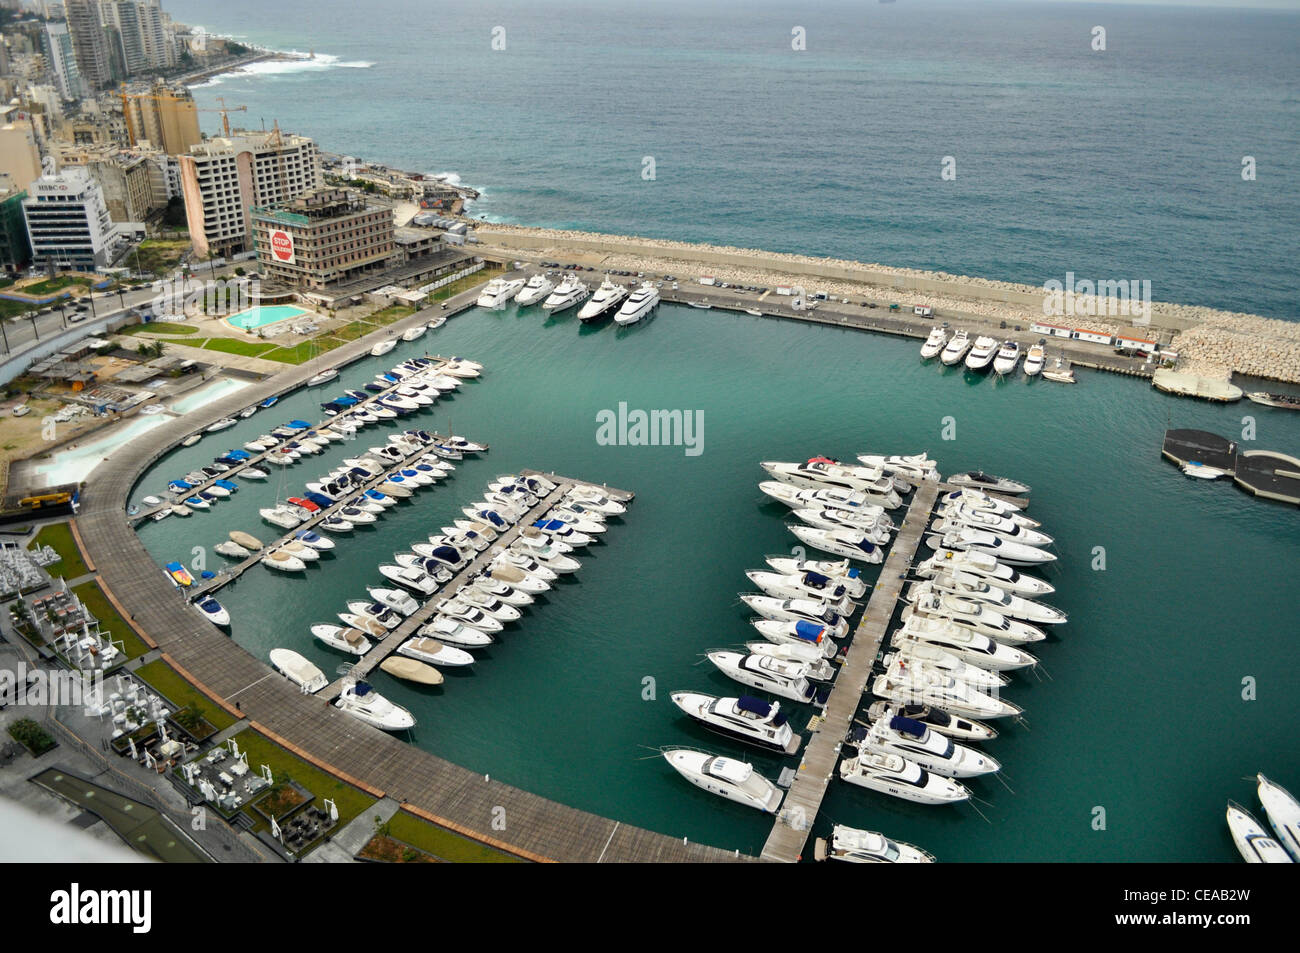 St.George Marina in Beirut, seaport - Stock Image